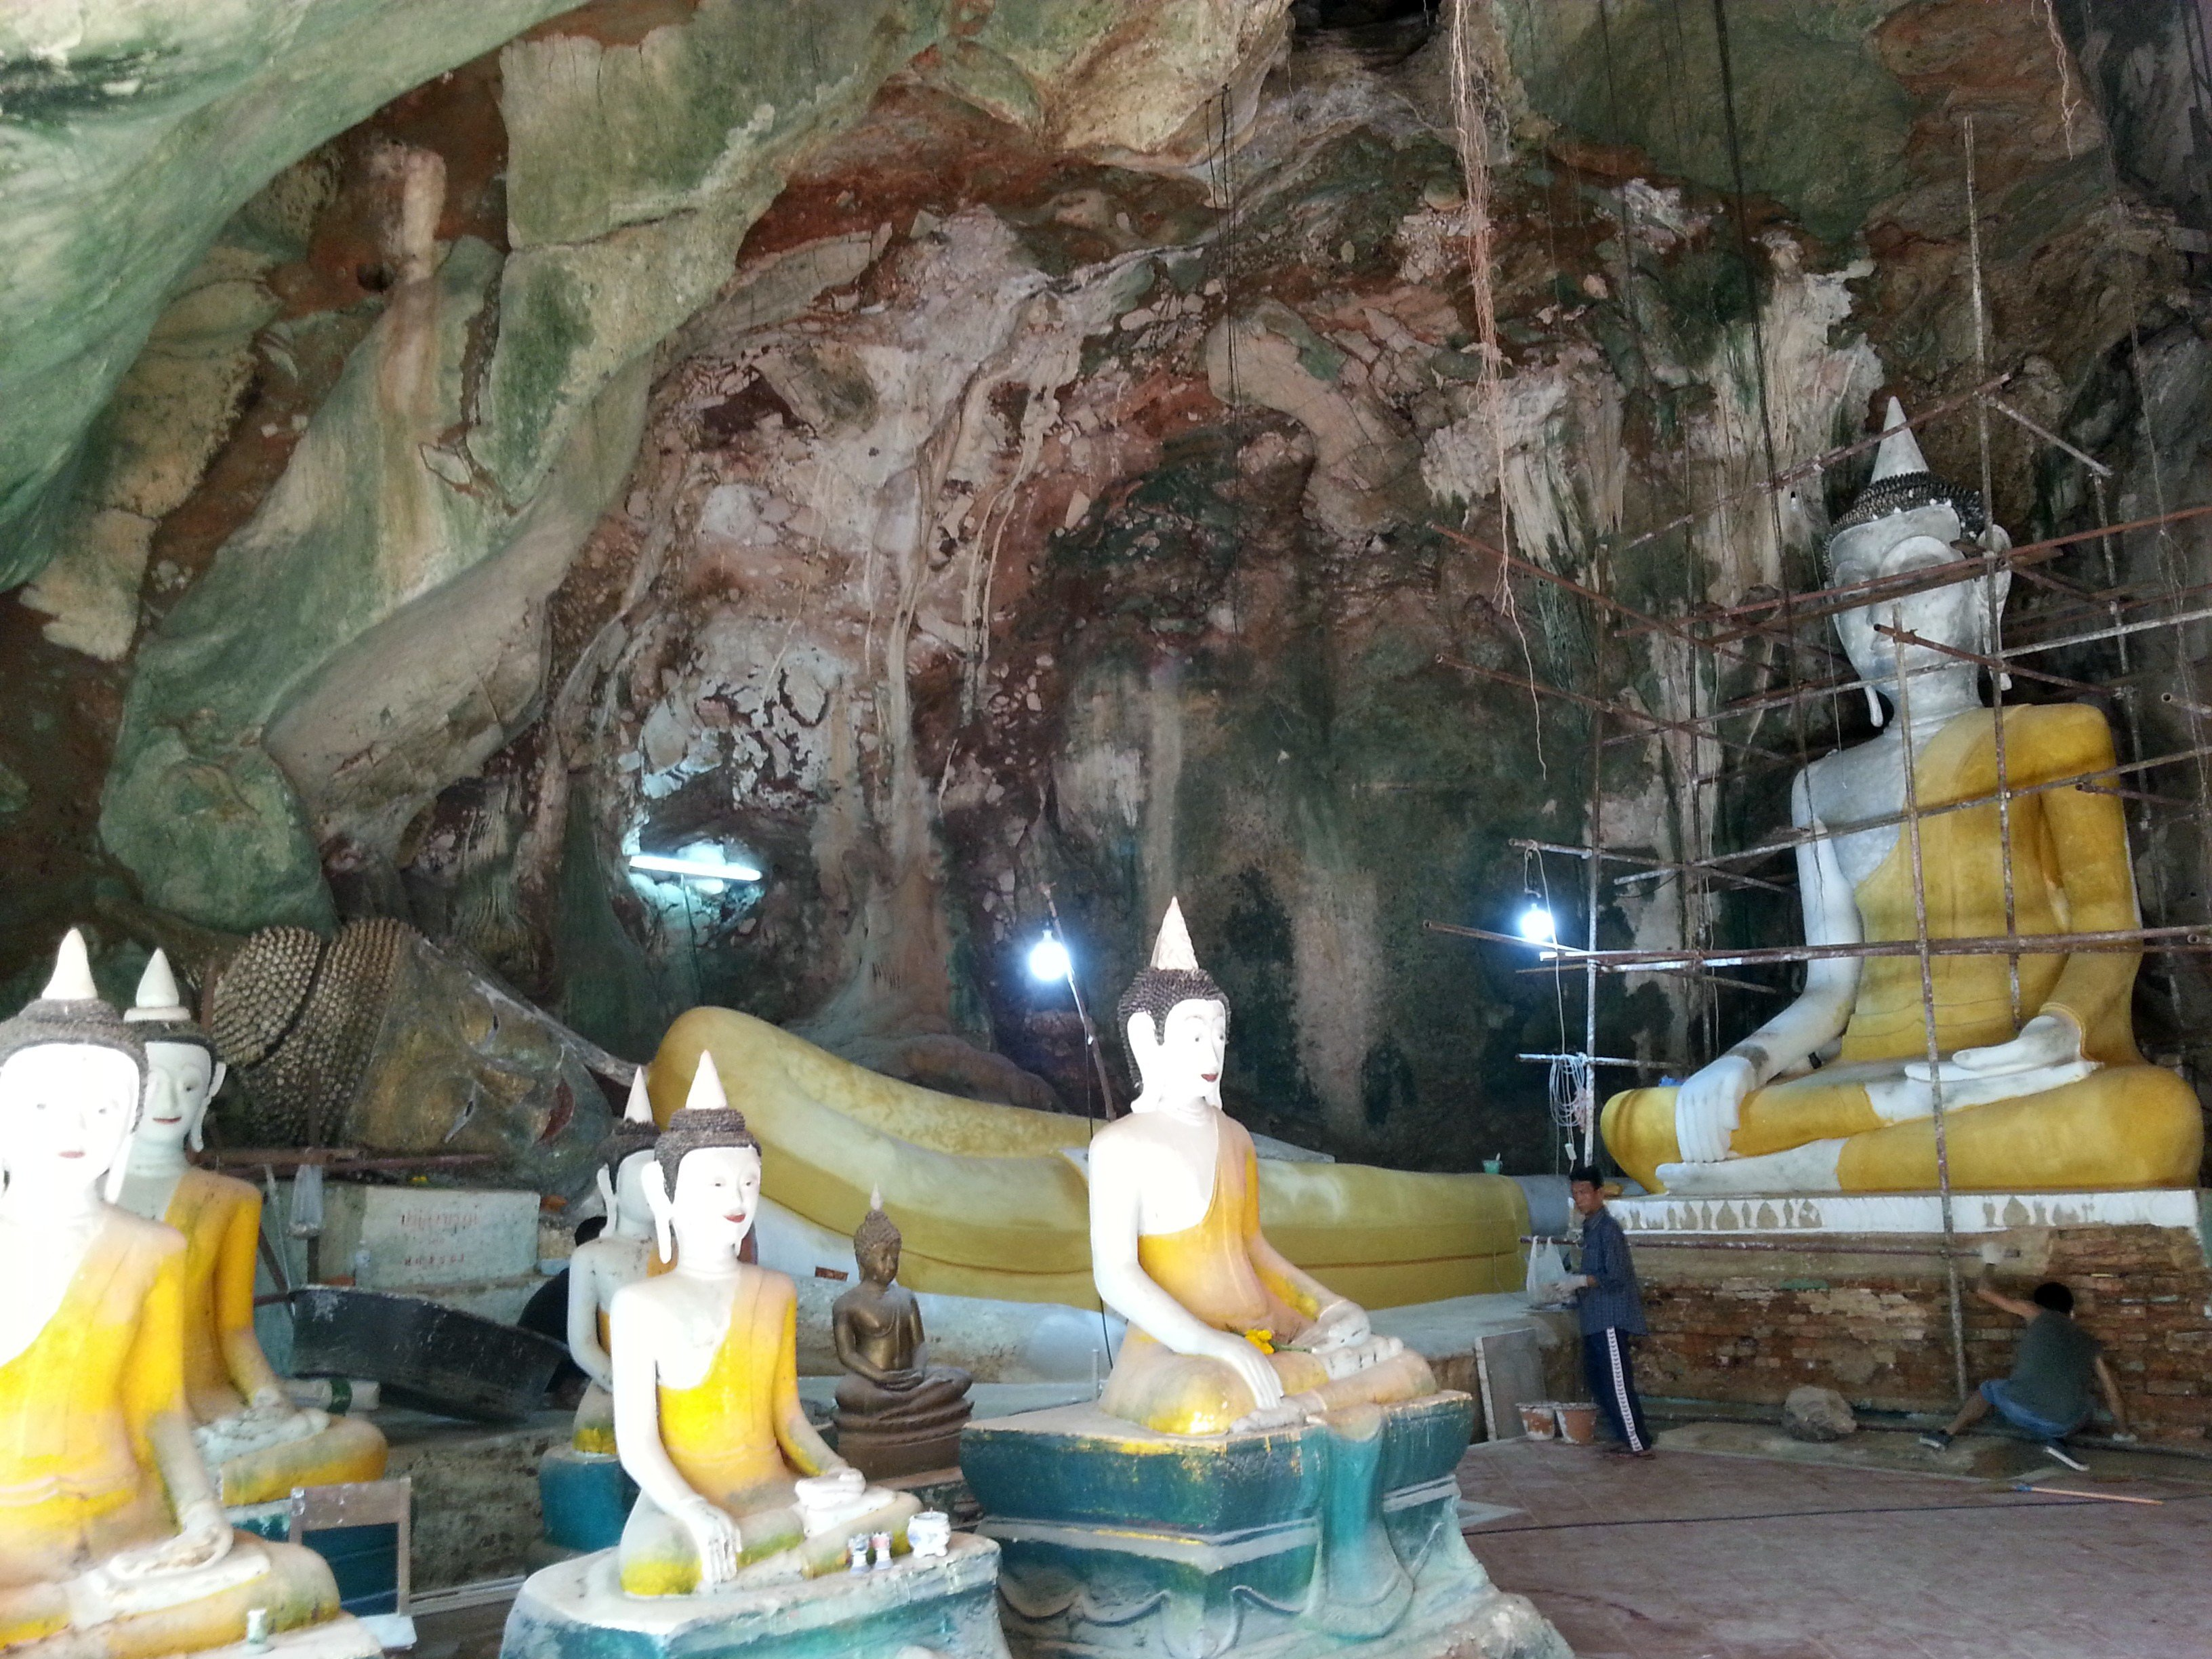 Repair work being done in Khuha Sawan Cave